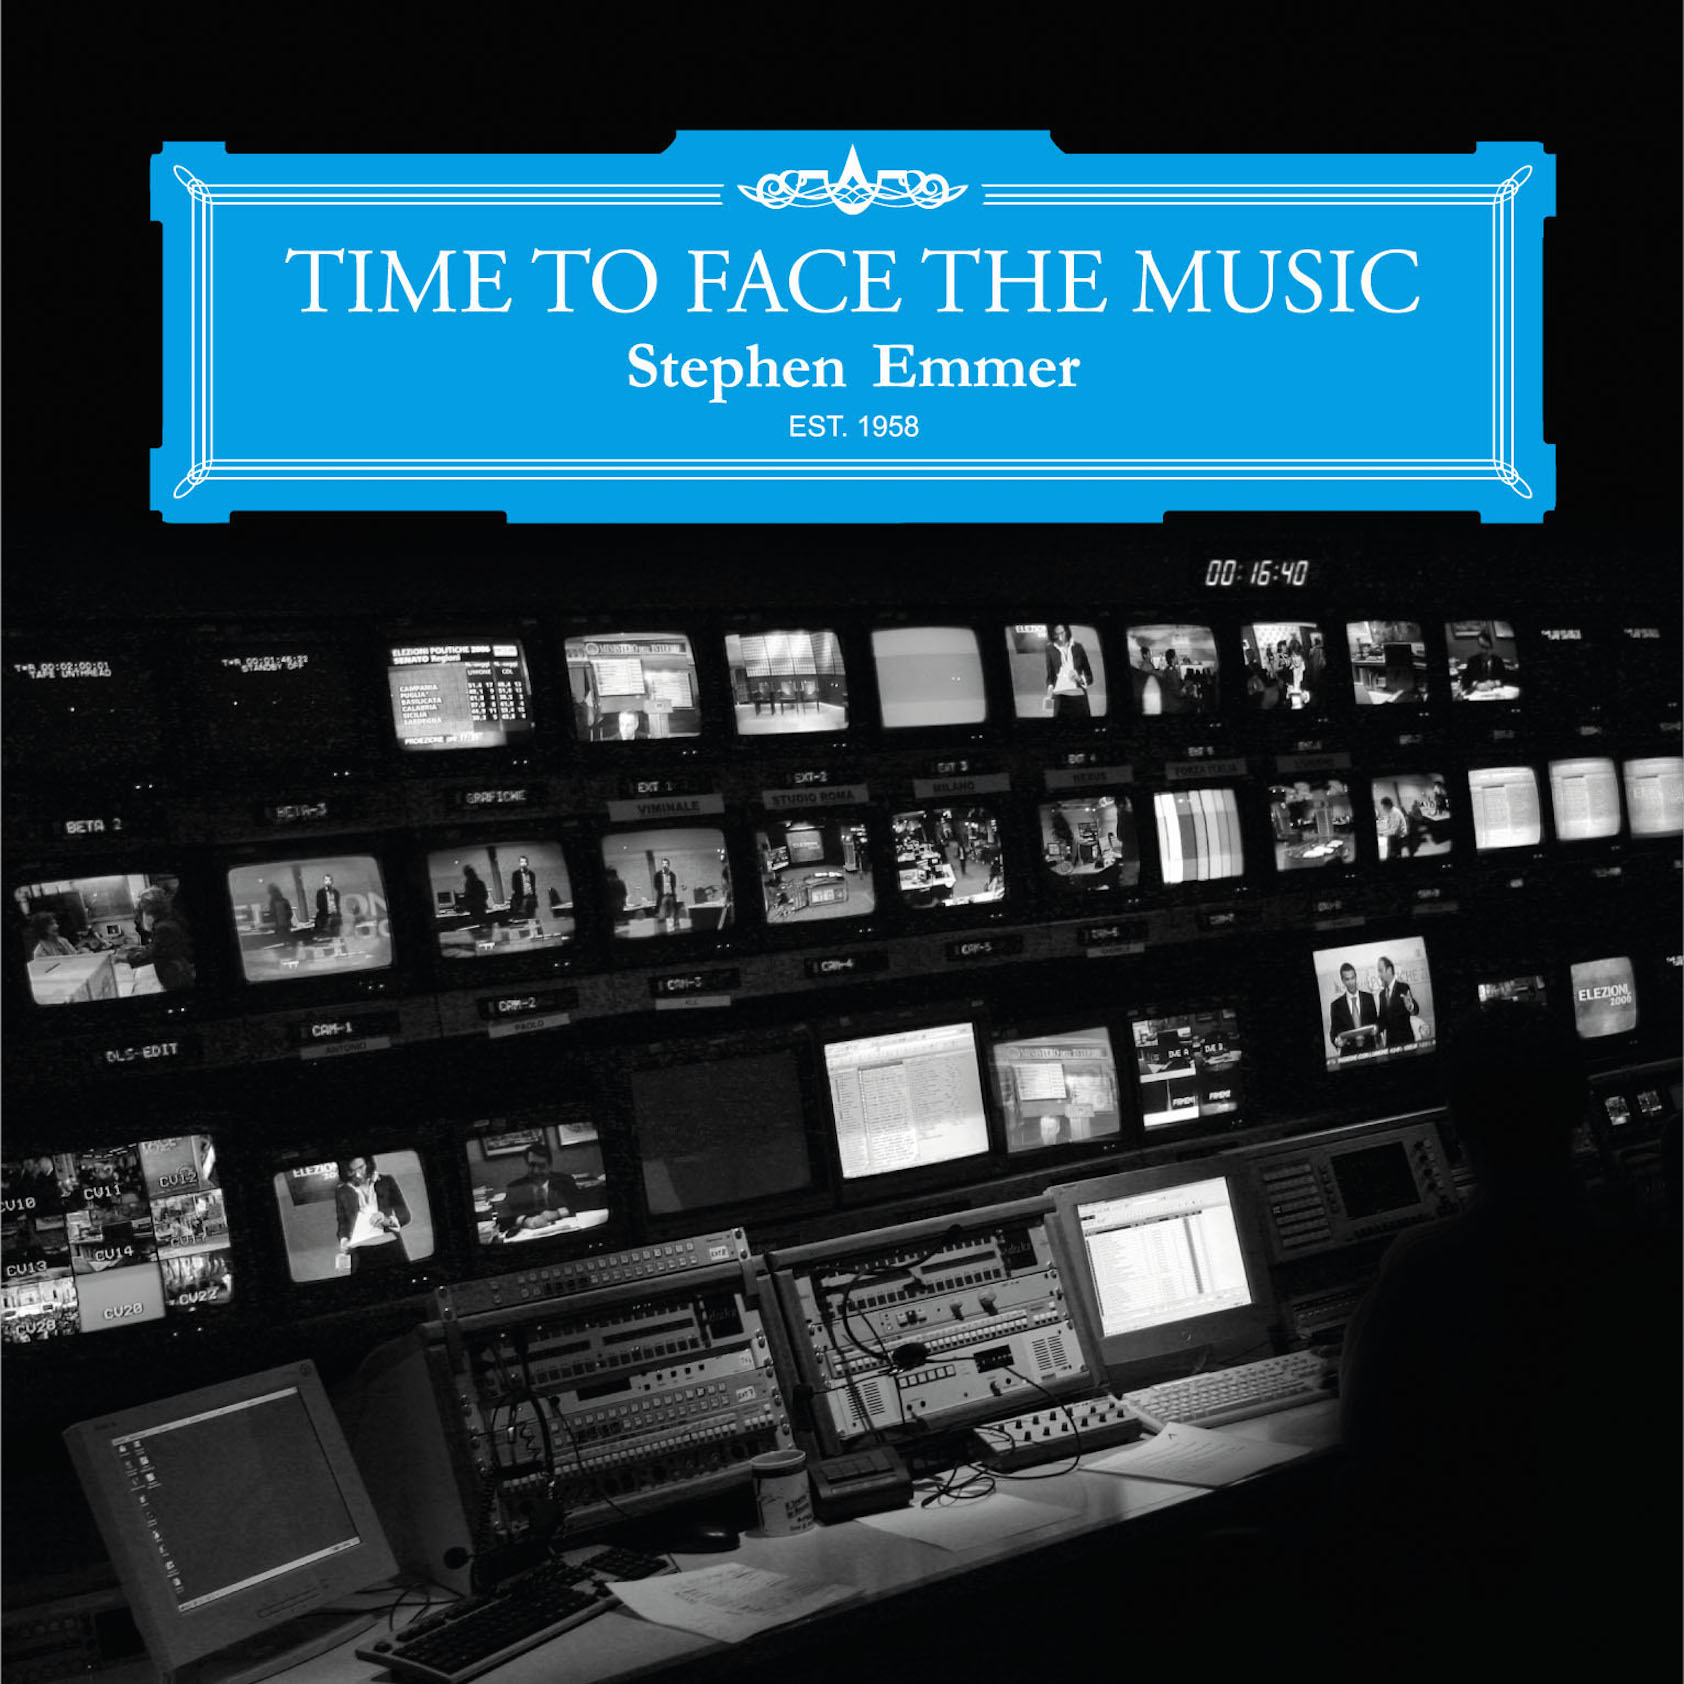 Time to face the music 2009-2015